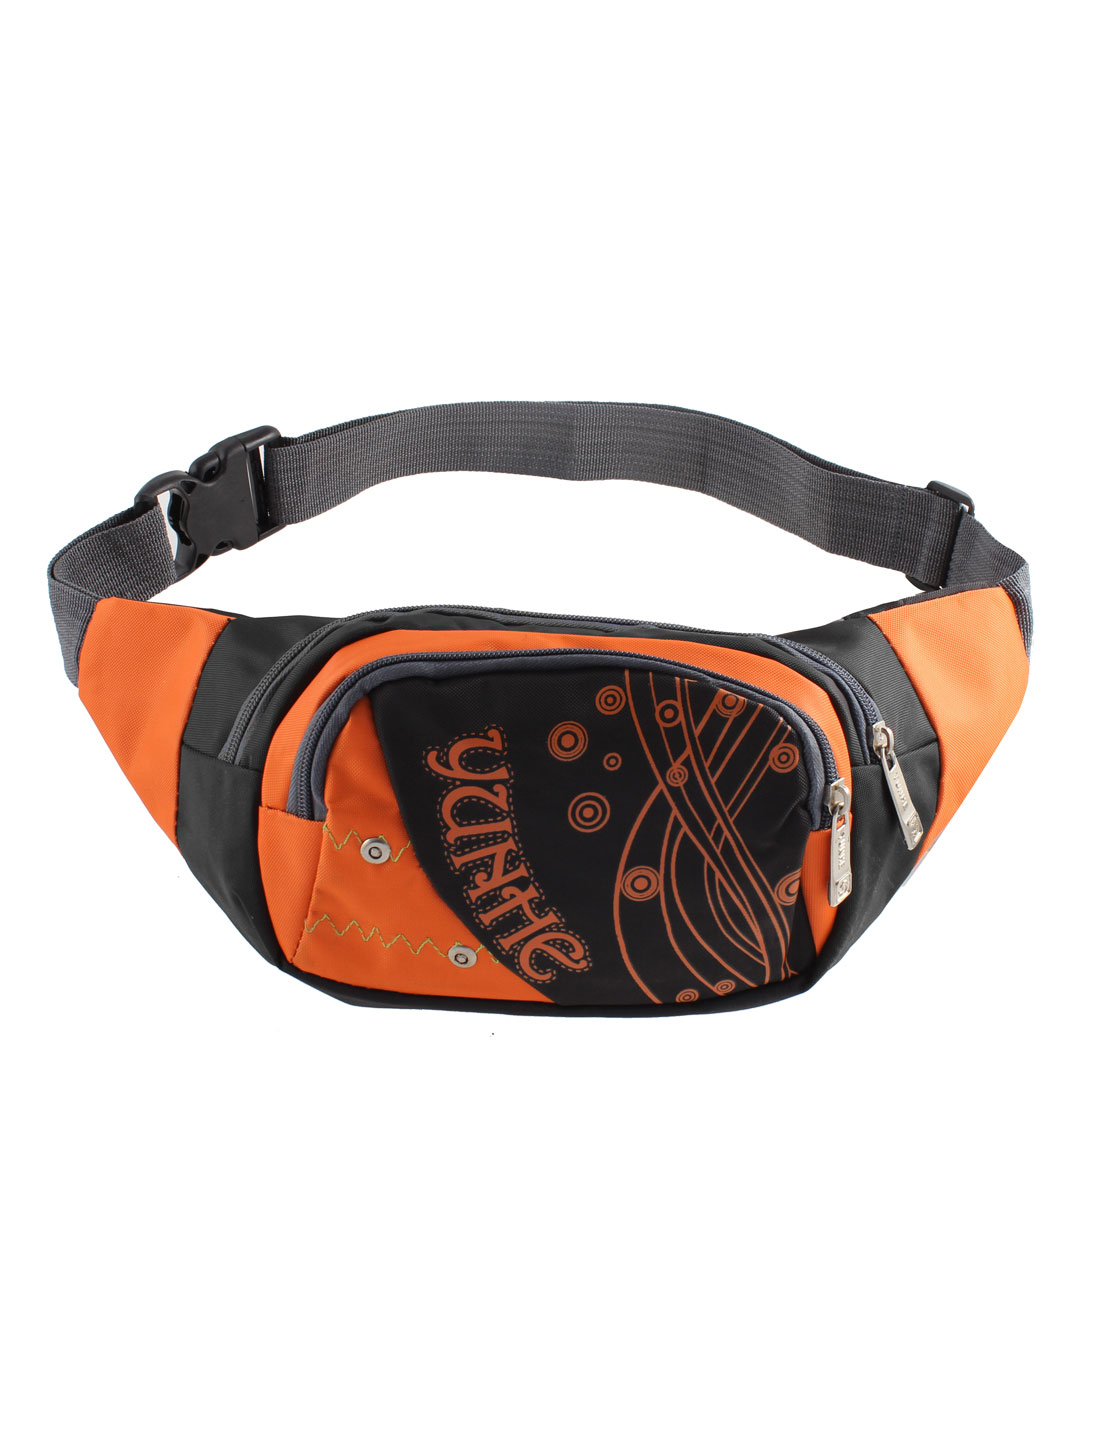 Men Zipper Closure Dots Print Waist Pack Sports Bag Pouch Black Orange